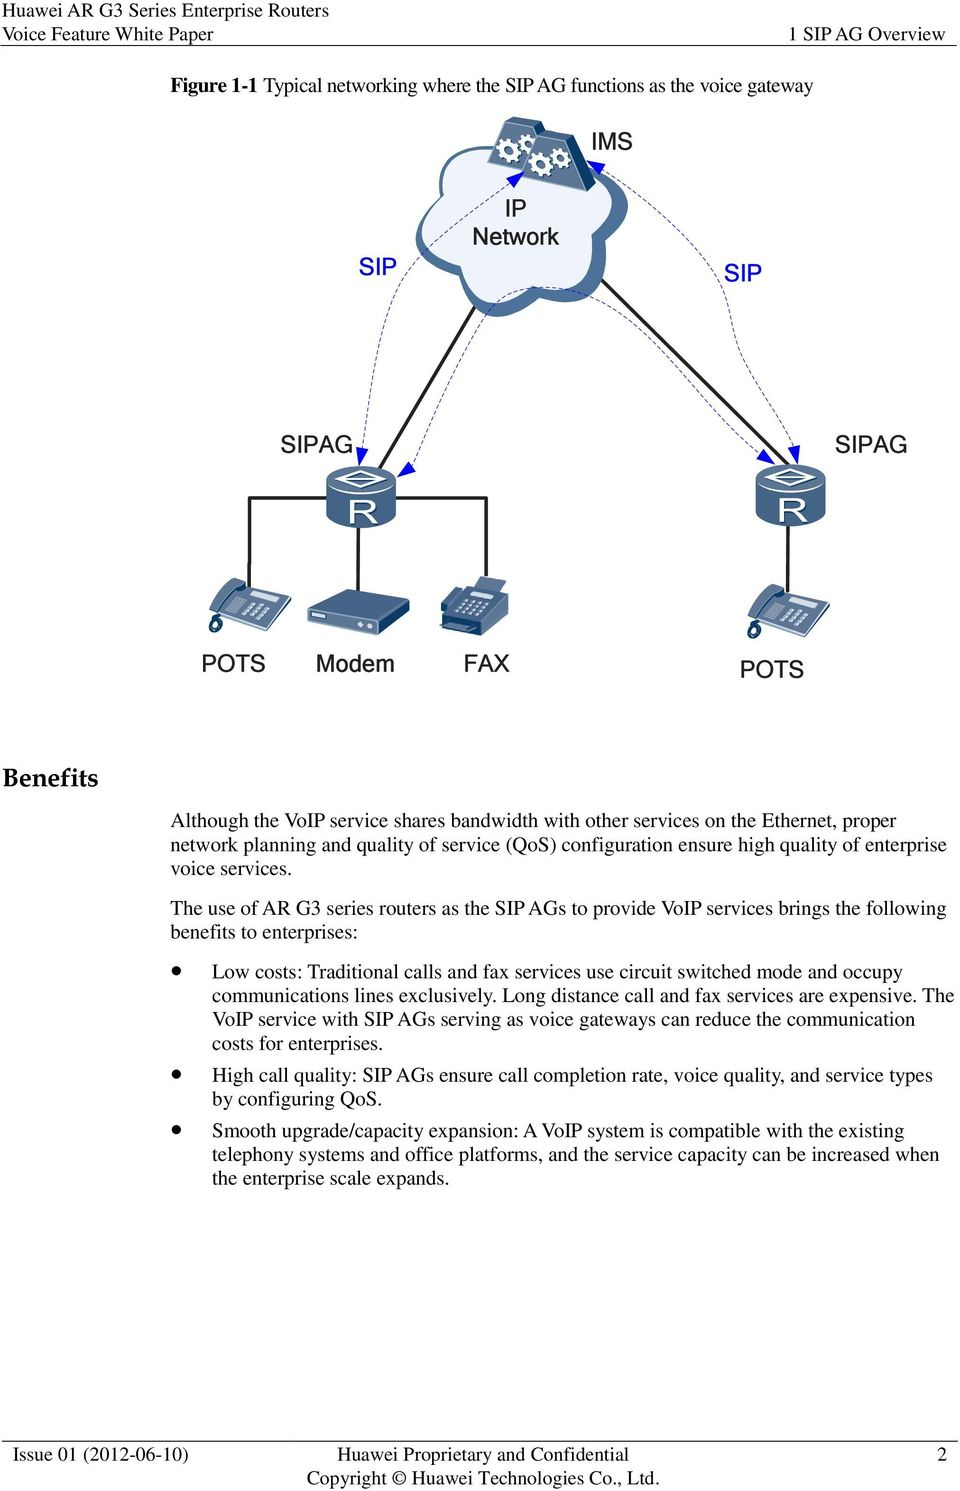 The use of AR G3 series routers as the SIP AGs to provide VoIP services brings the following benefits to enterprises: Low costs: Traditional calls and fax services use circuit switched mode and